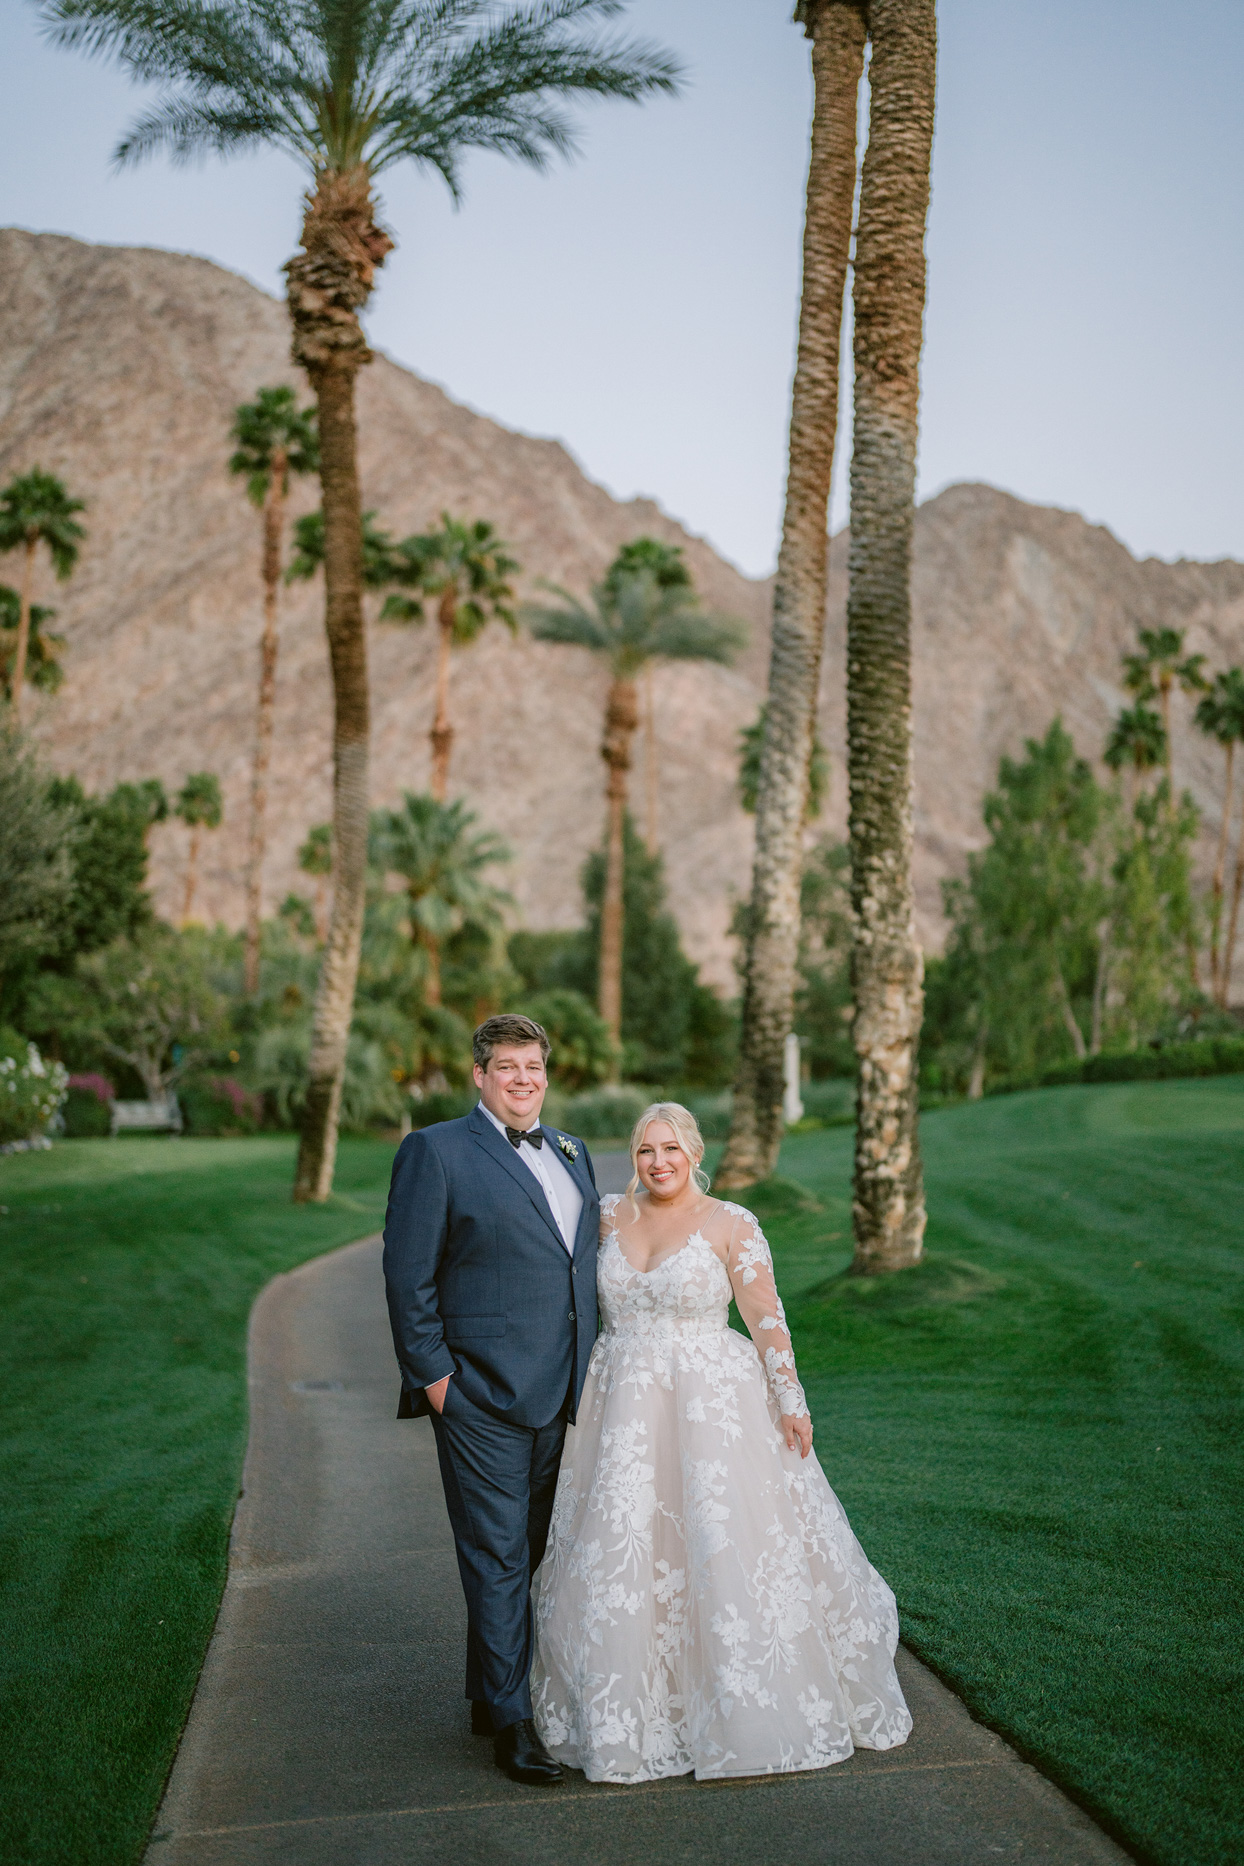 bride and groom by palm trees